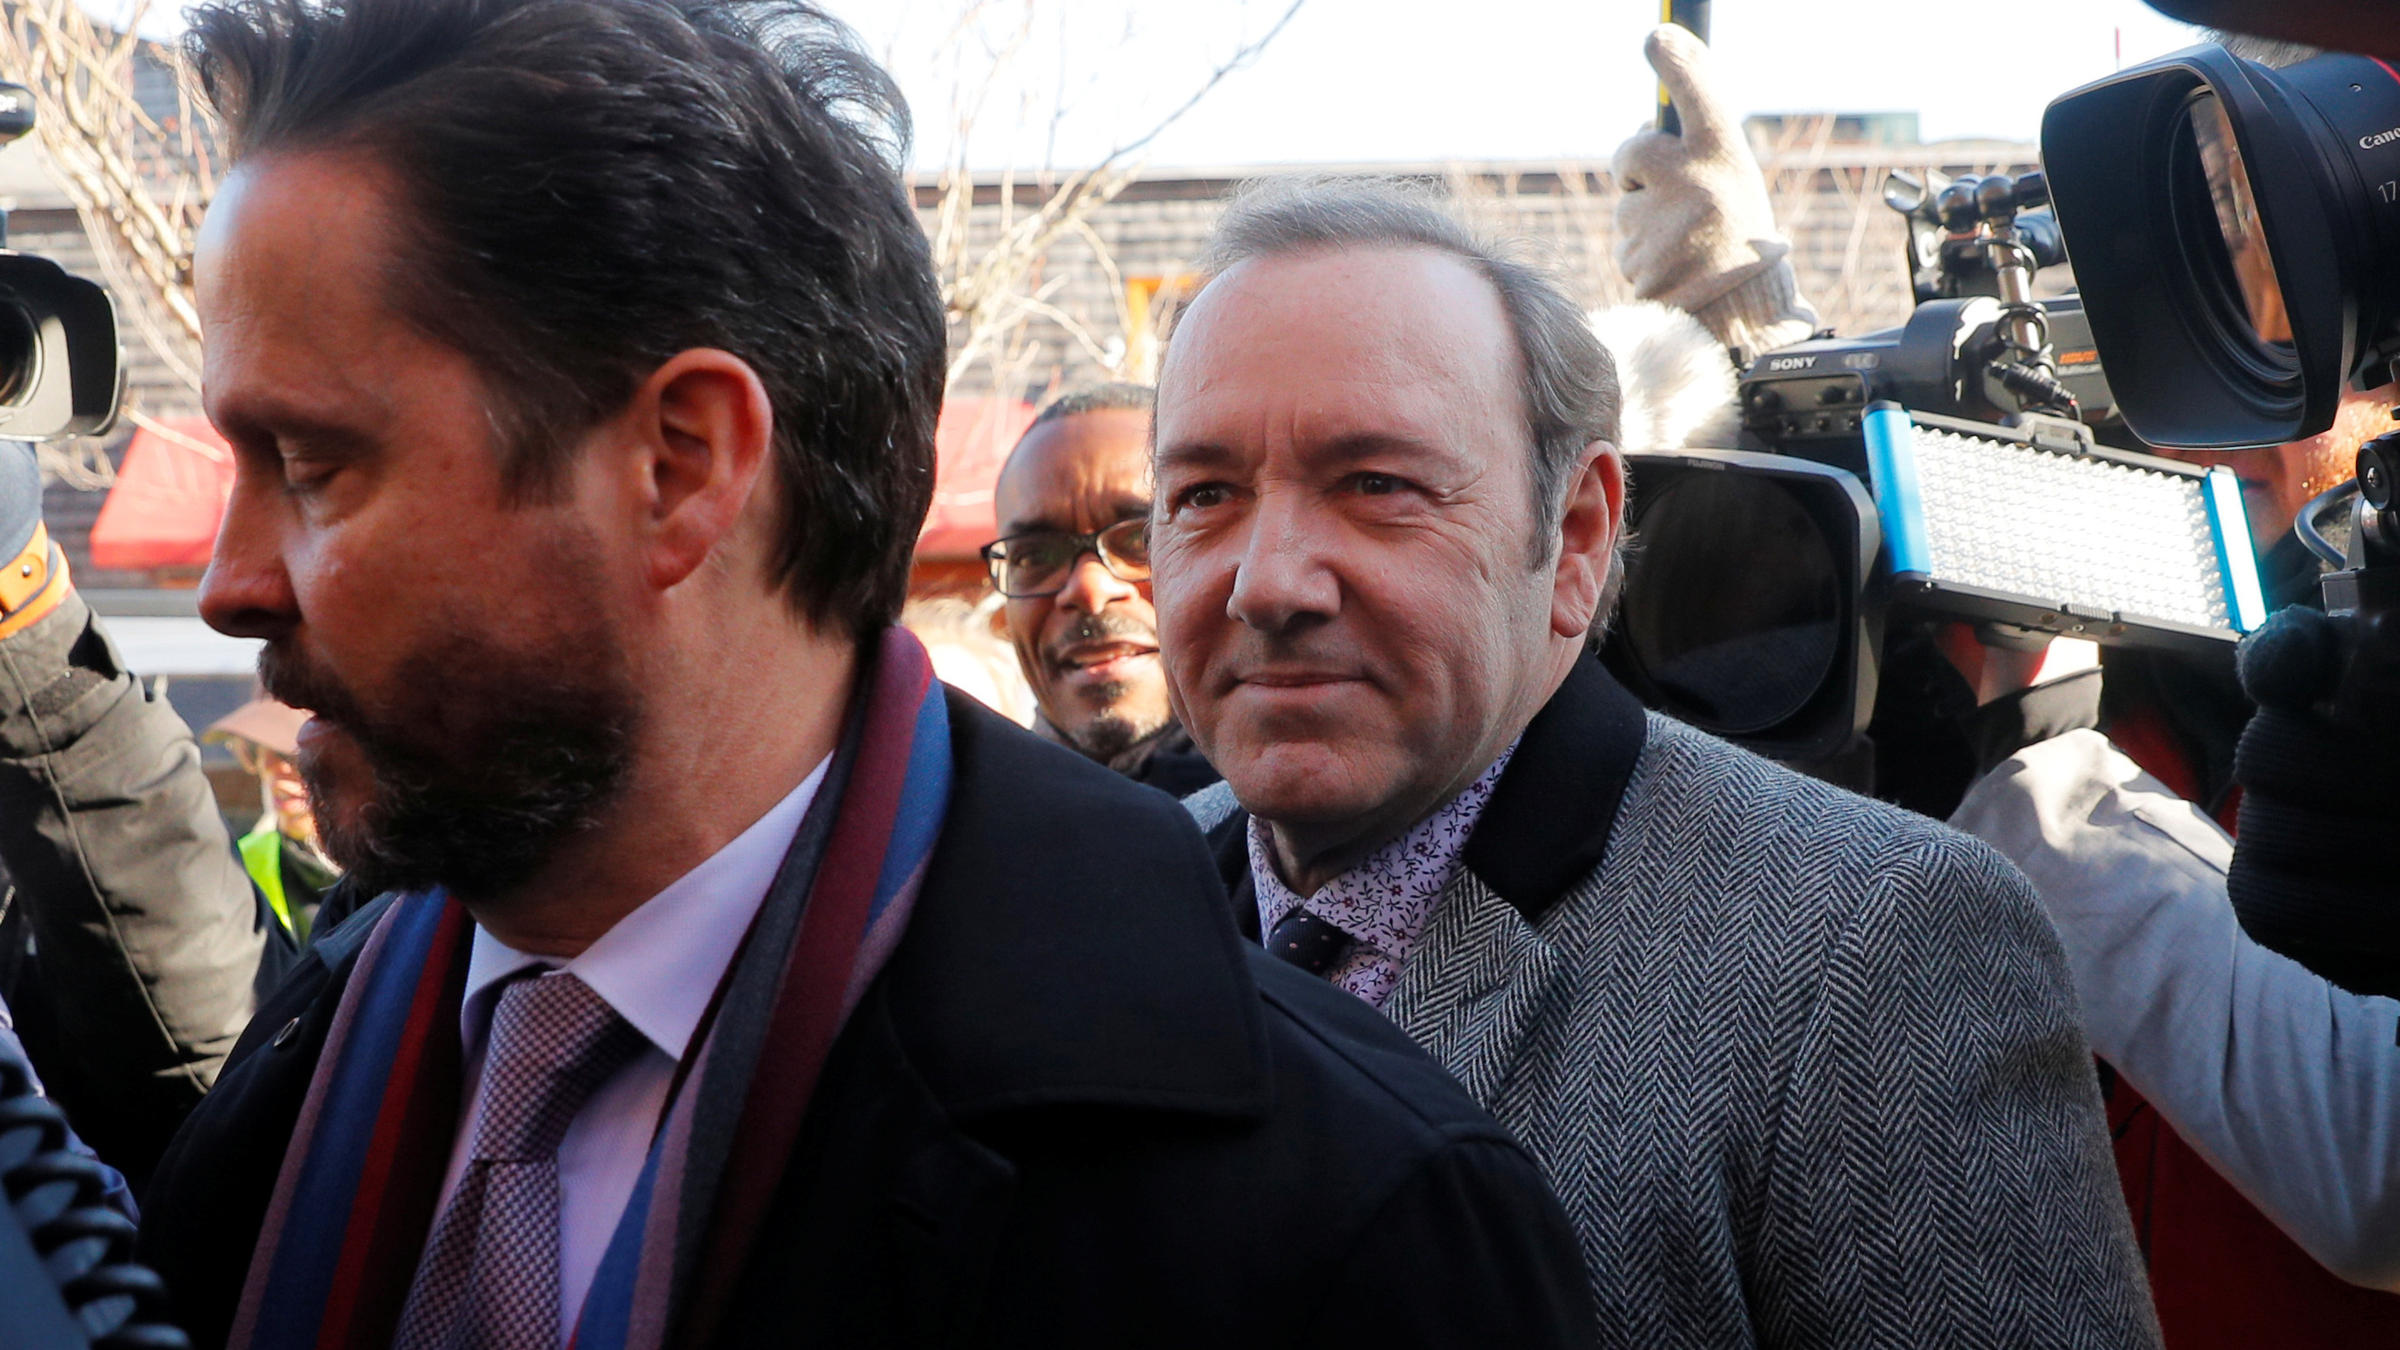 Kevin Spacey Pleads Not Guilty to Sexual Assault Allegation